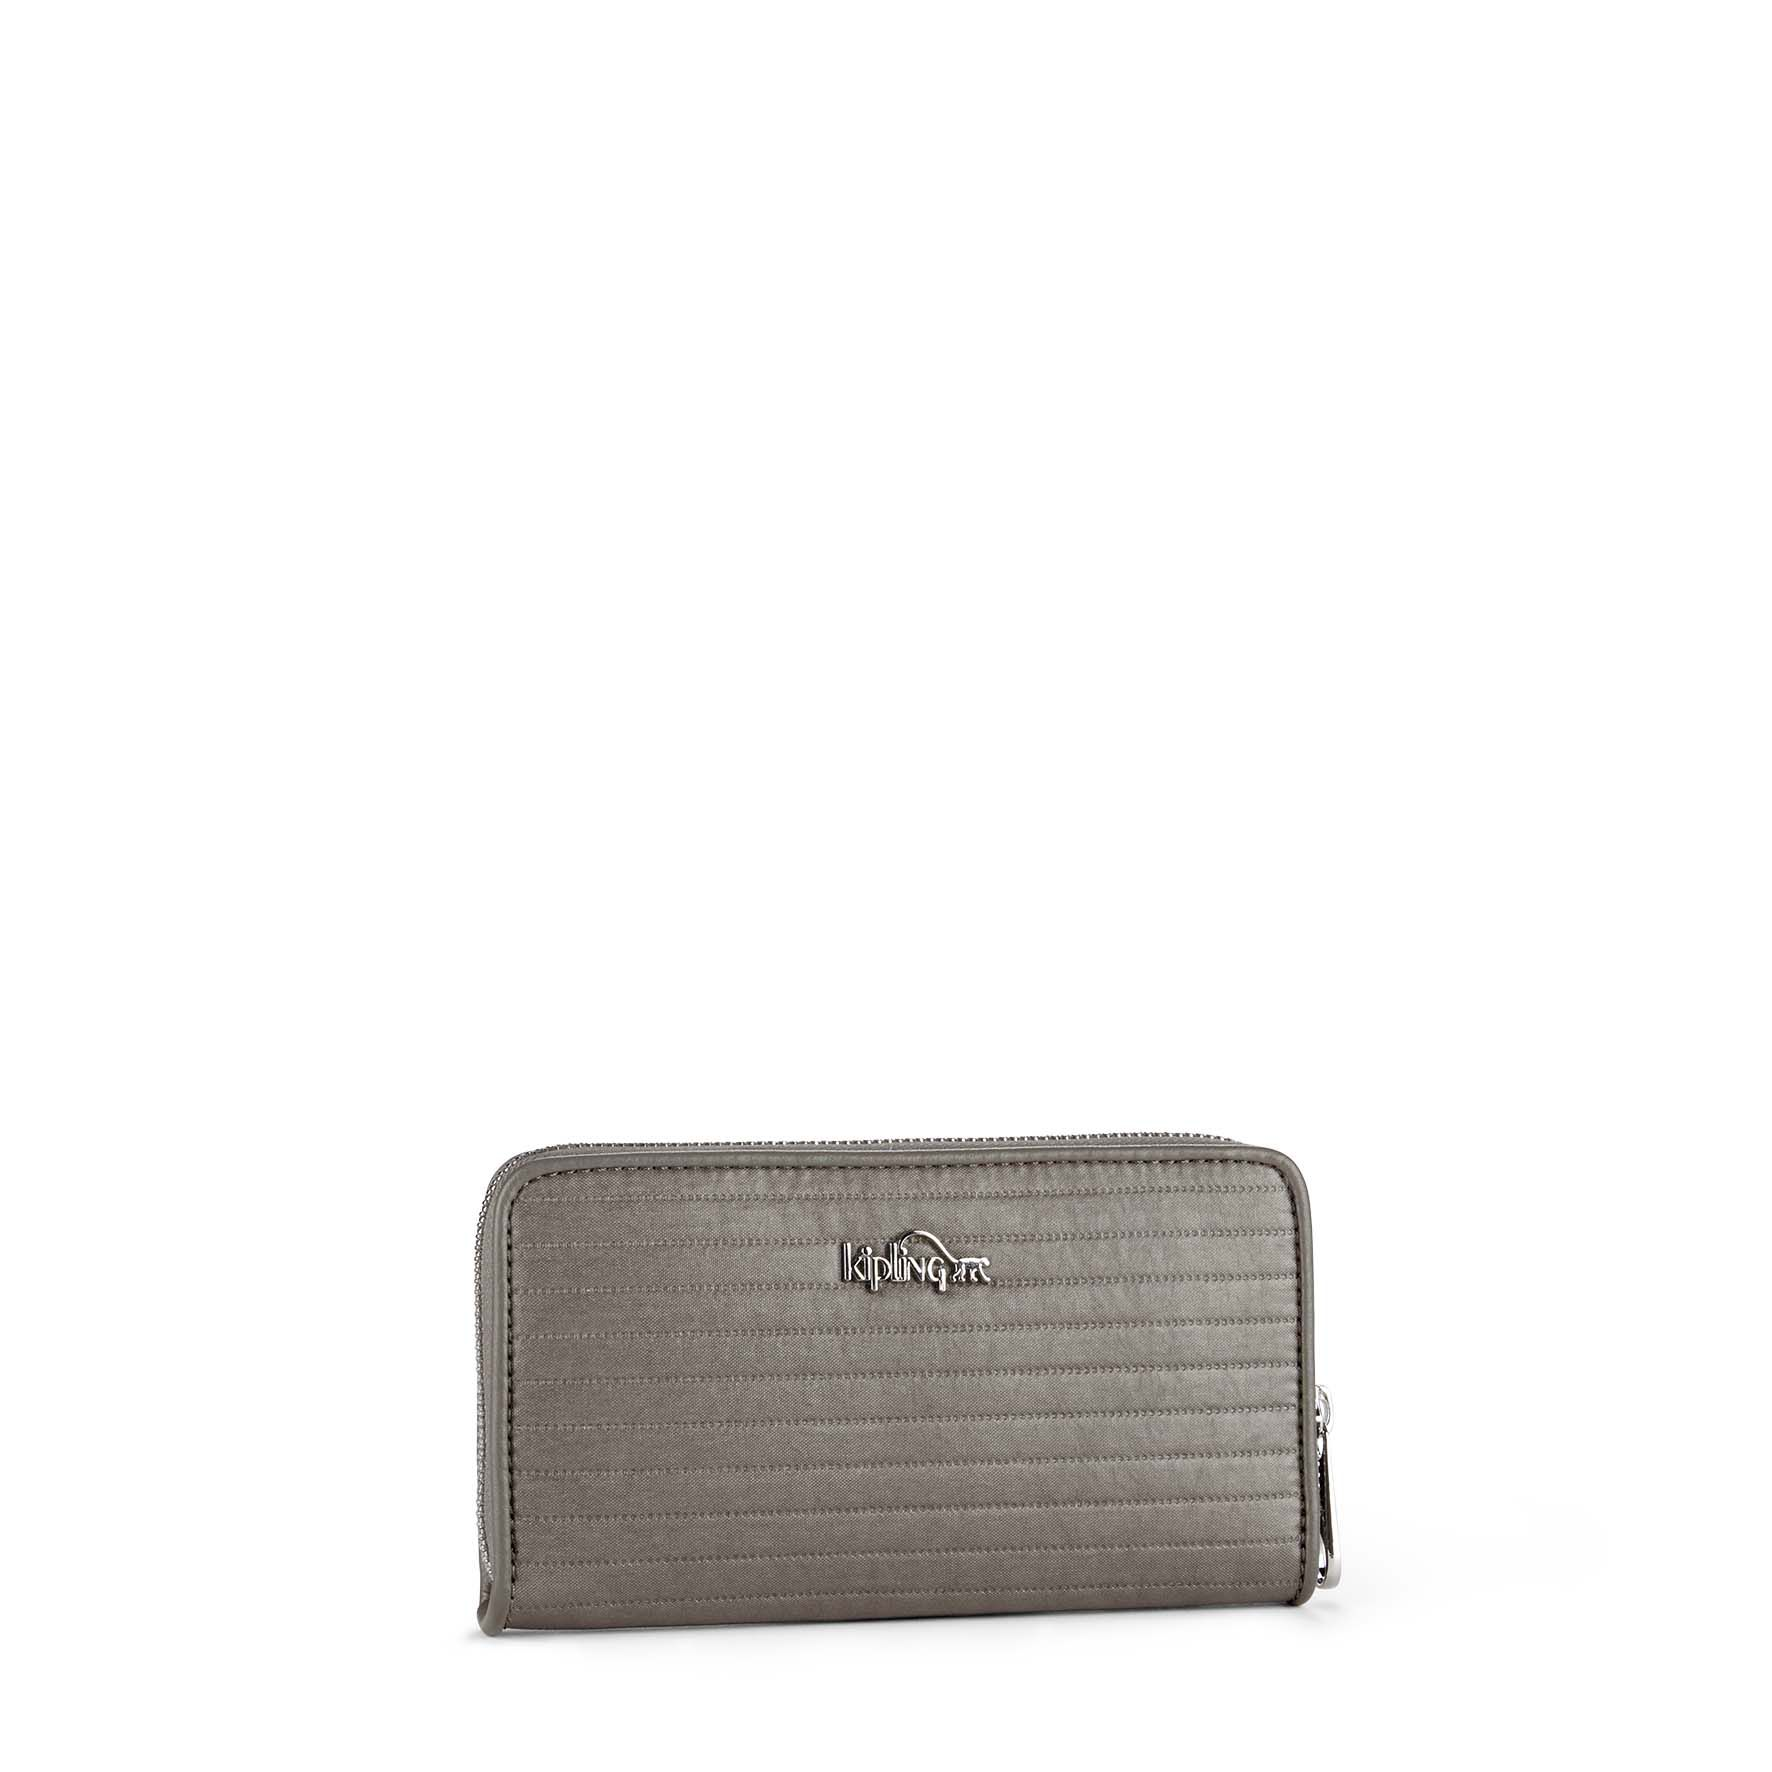 Kipling Nimmi large wallet Brown